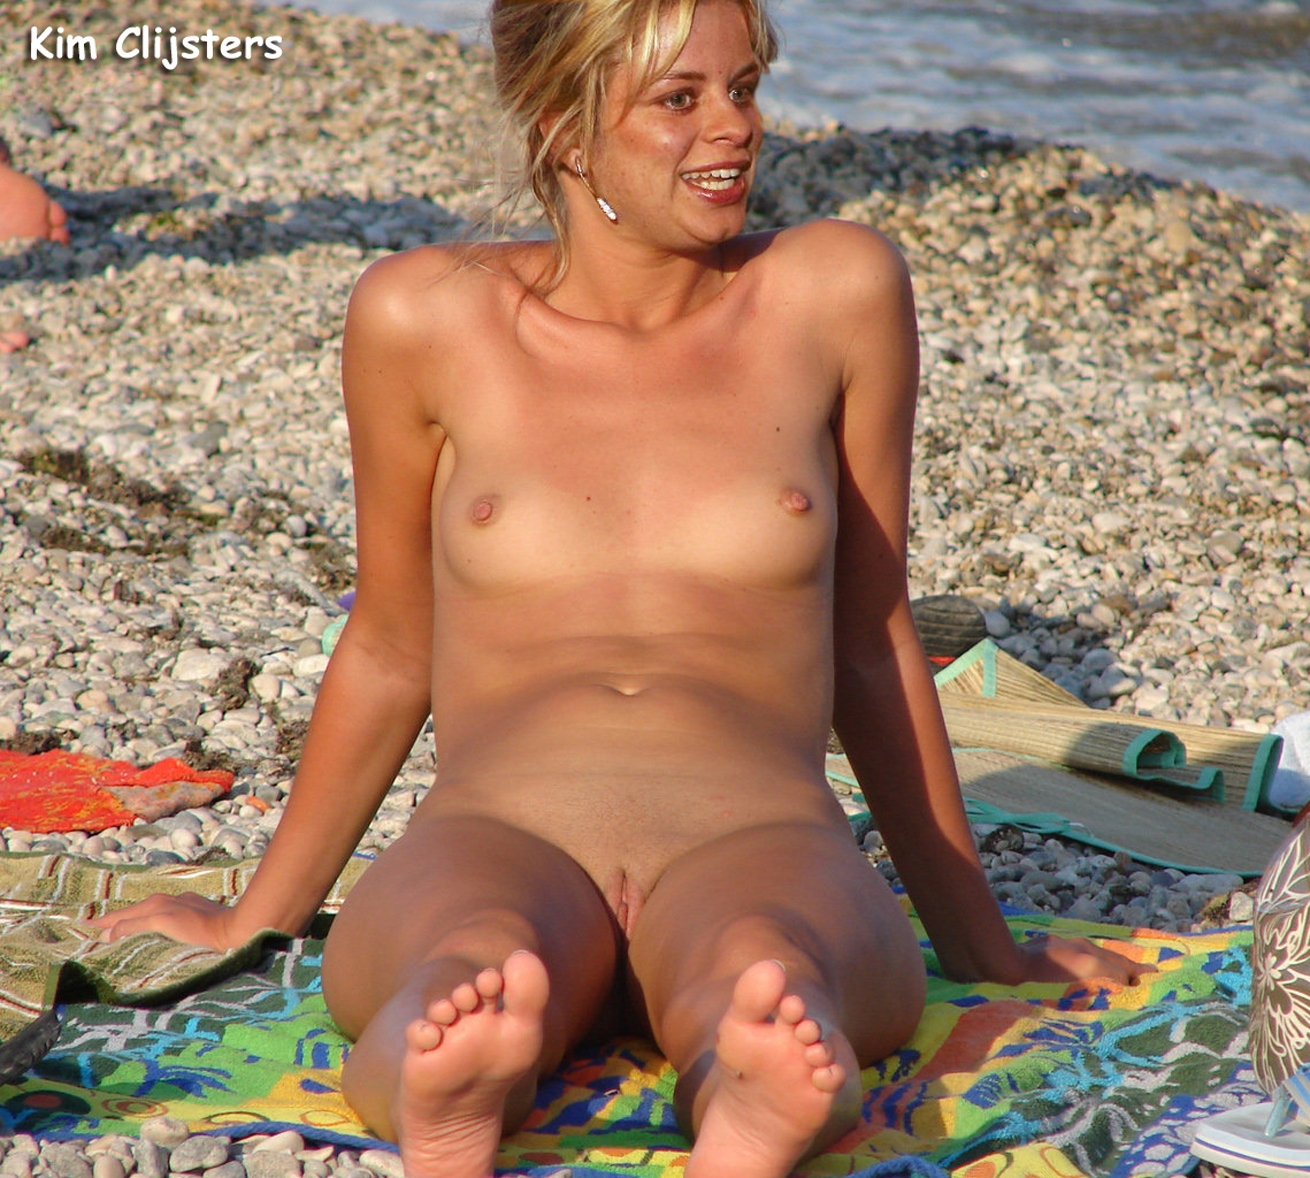 Kim clijsters nude fake